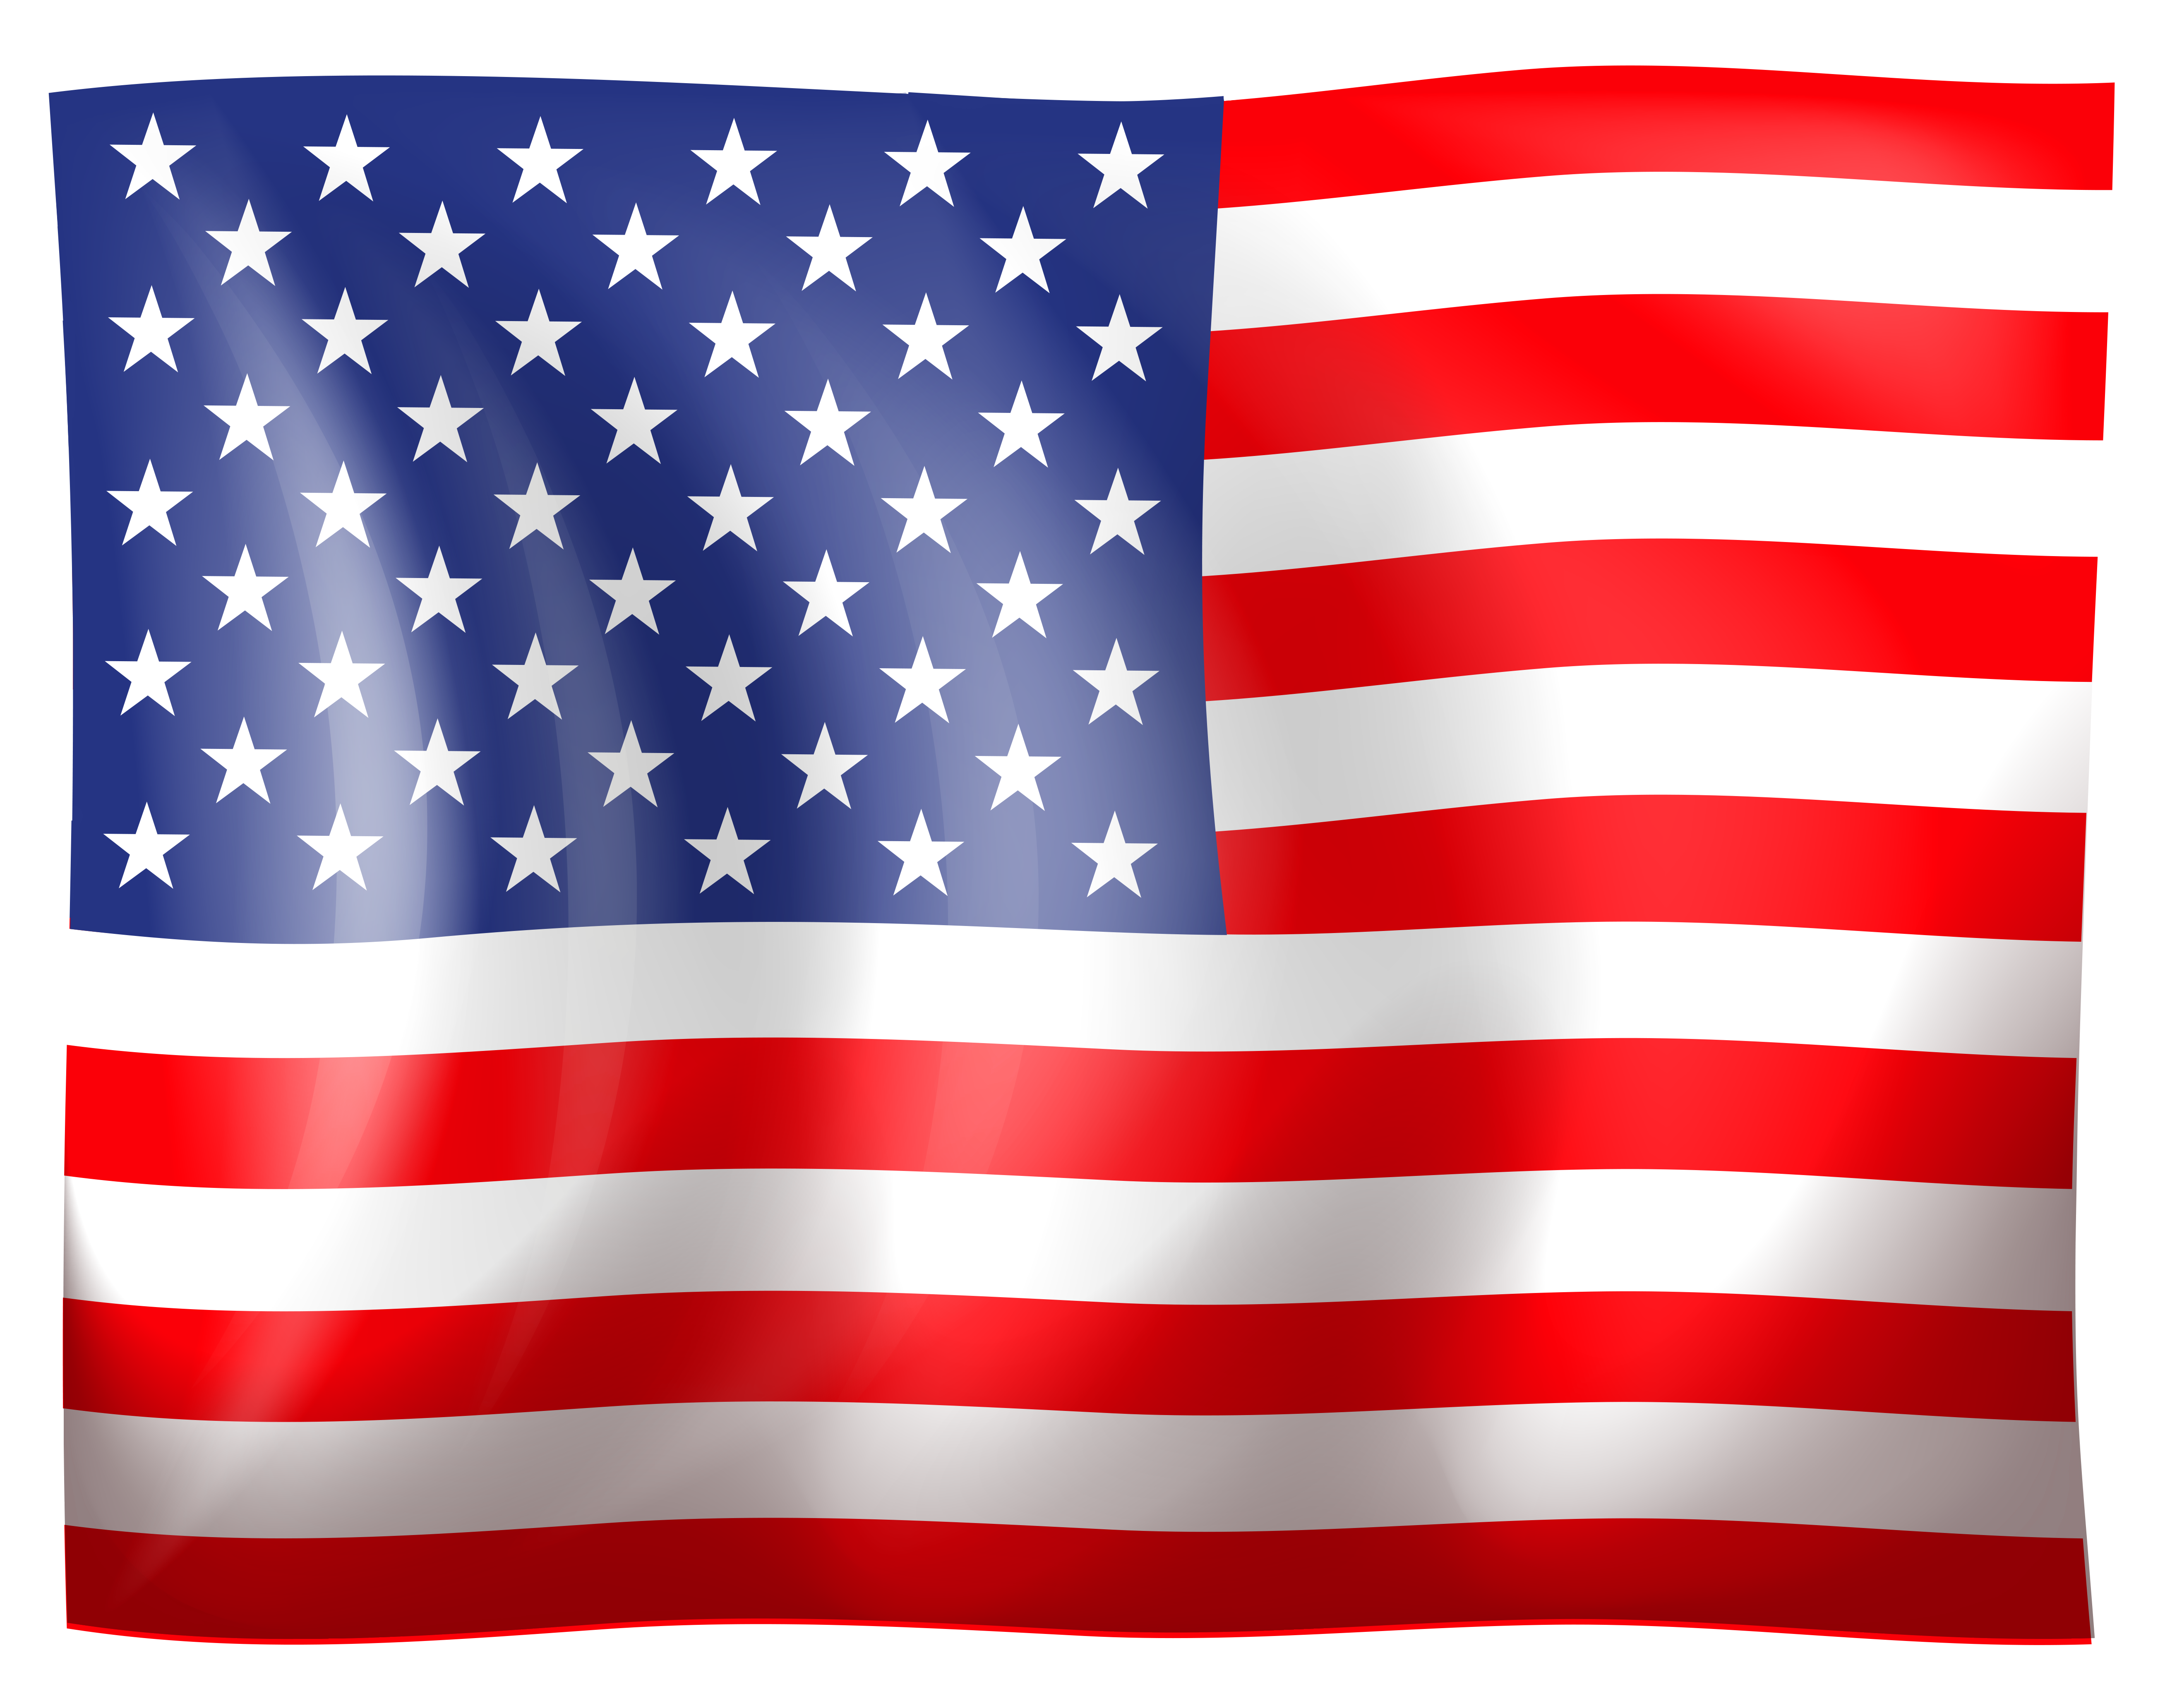 Patriotic clipart us flag. American usa png transparentpng